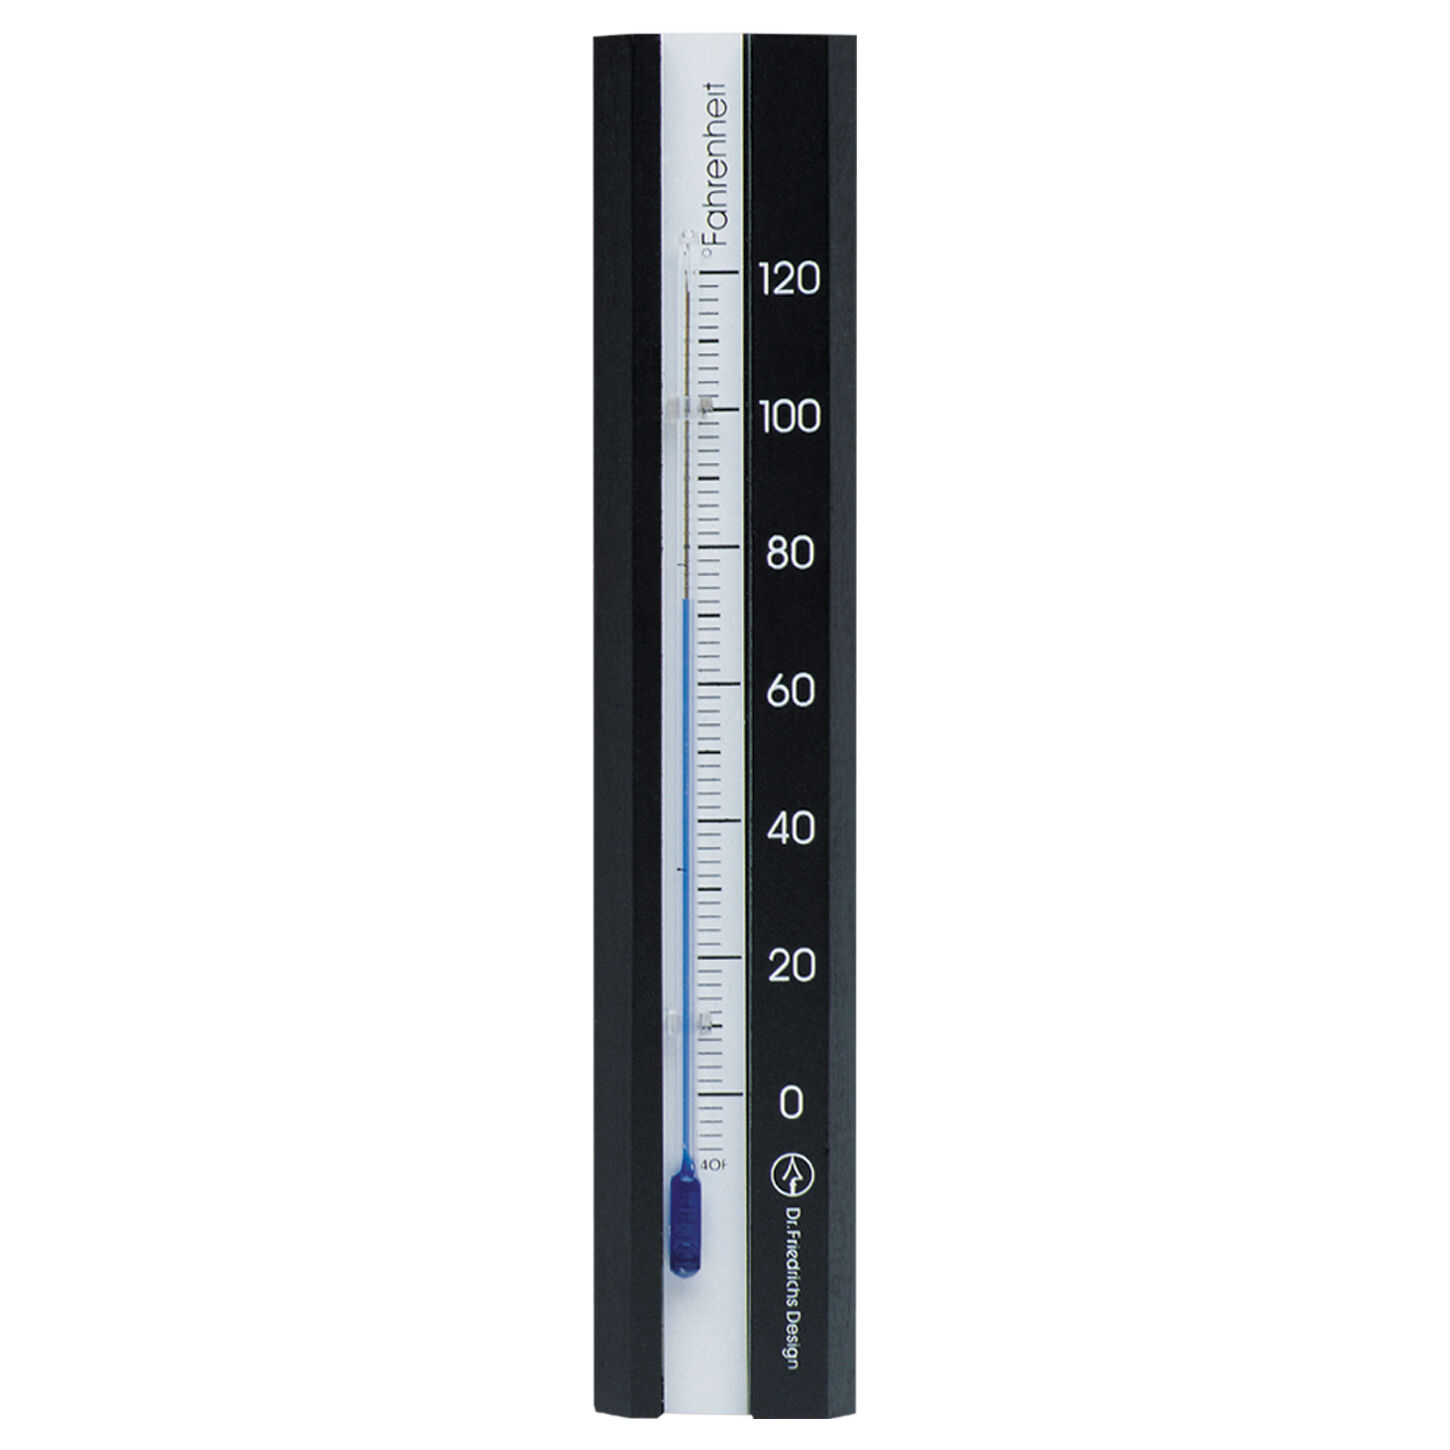 Analog Wooden Wall Thermometer Black Finish with White Scale 7.12 inch tall